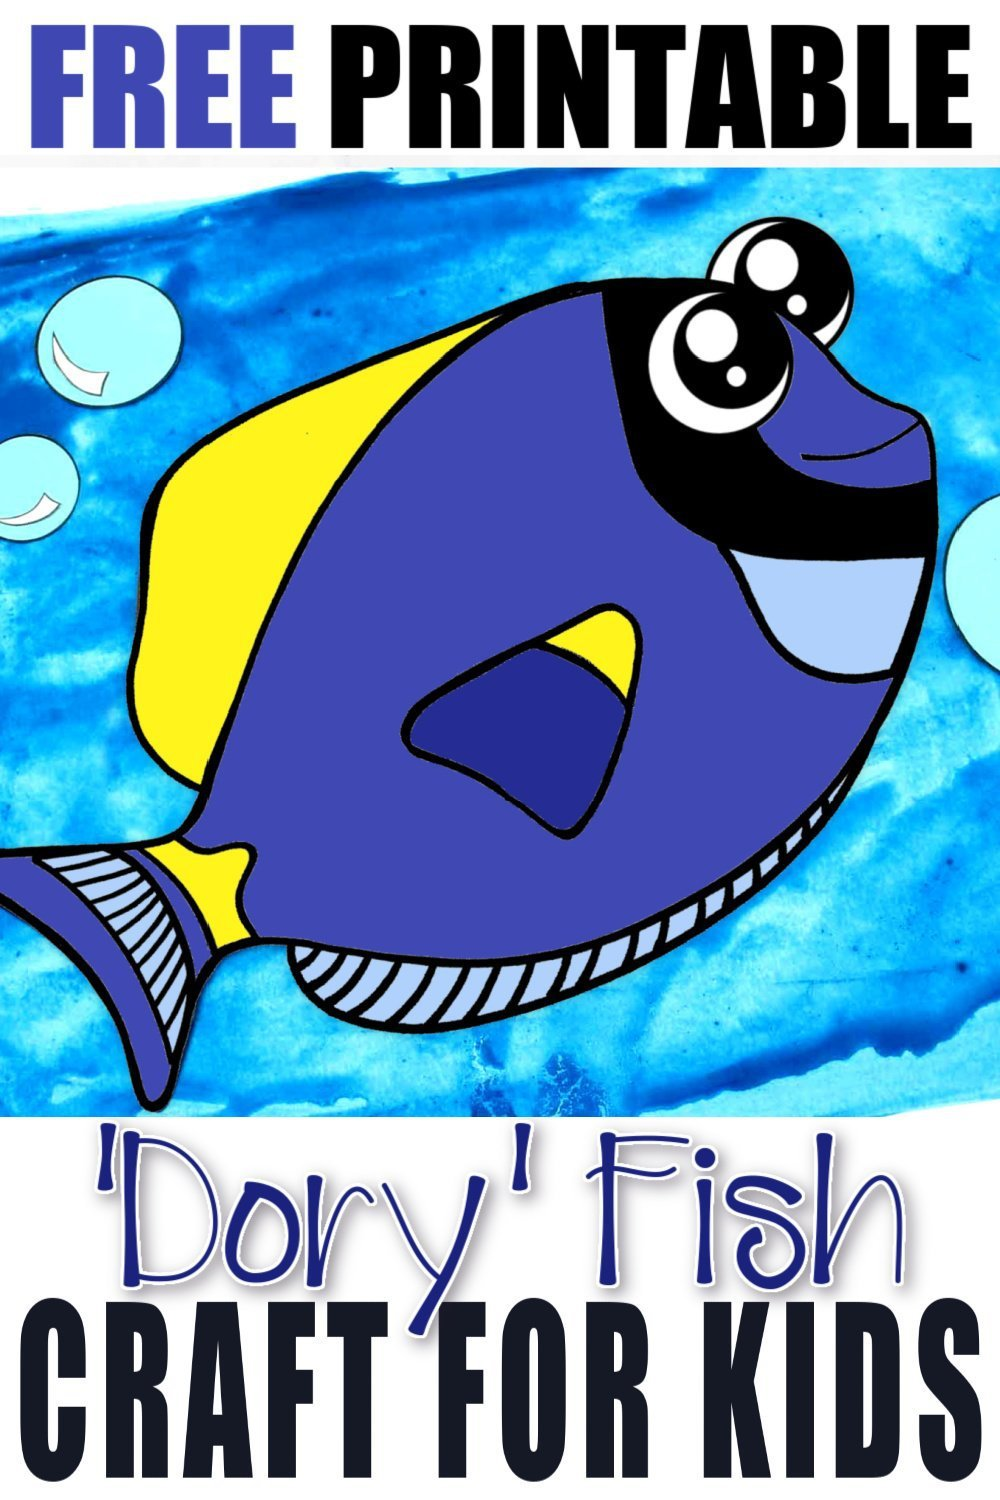 Free Printable Dory Blue Tang Fish Ocean Animal Craft for Kids, preschoolers and toddlers